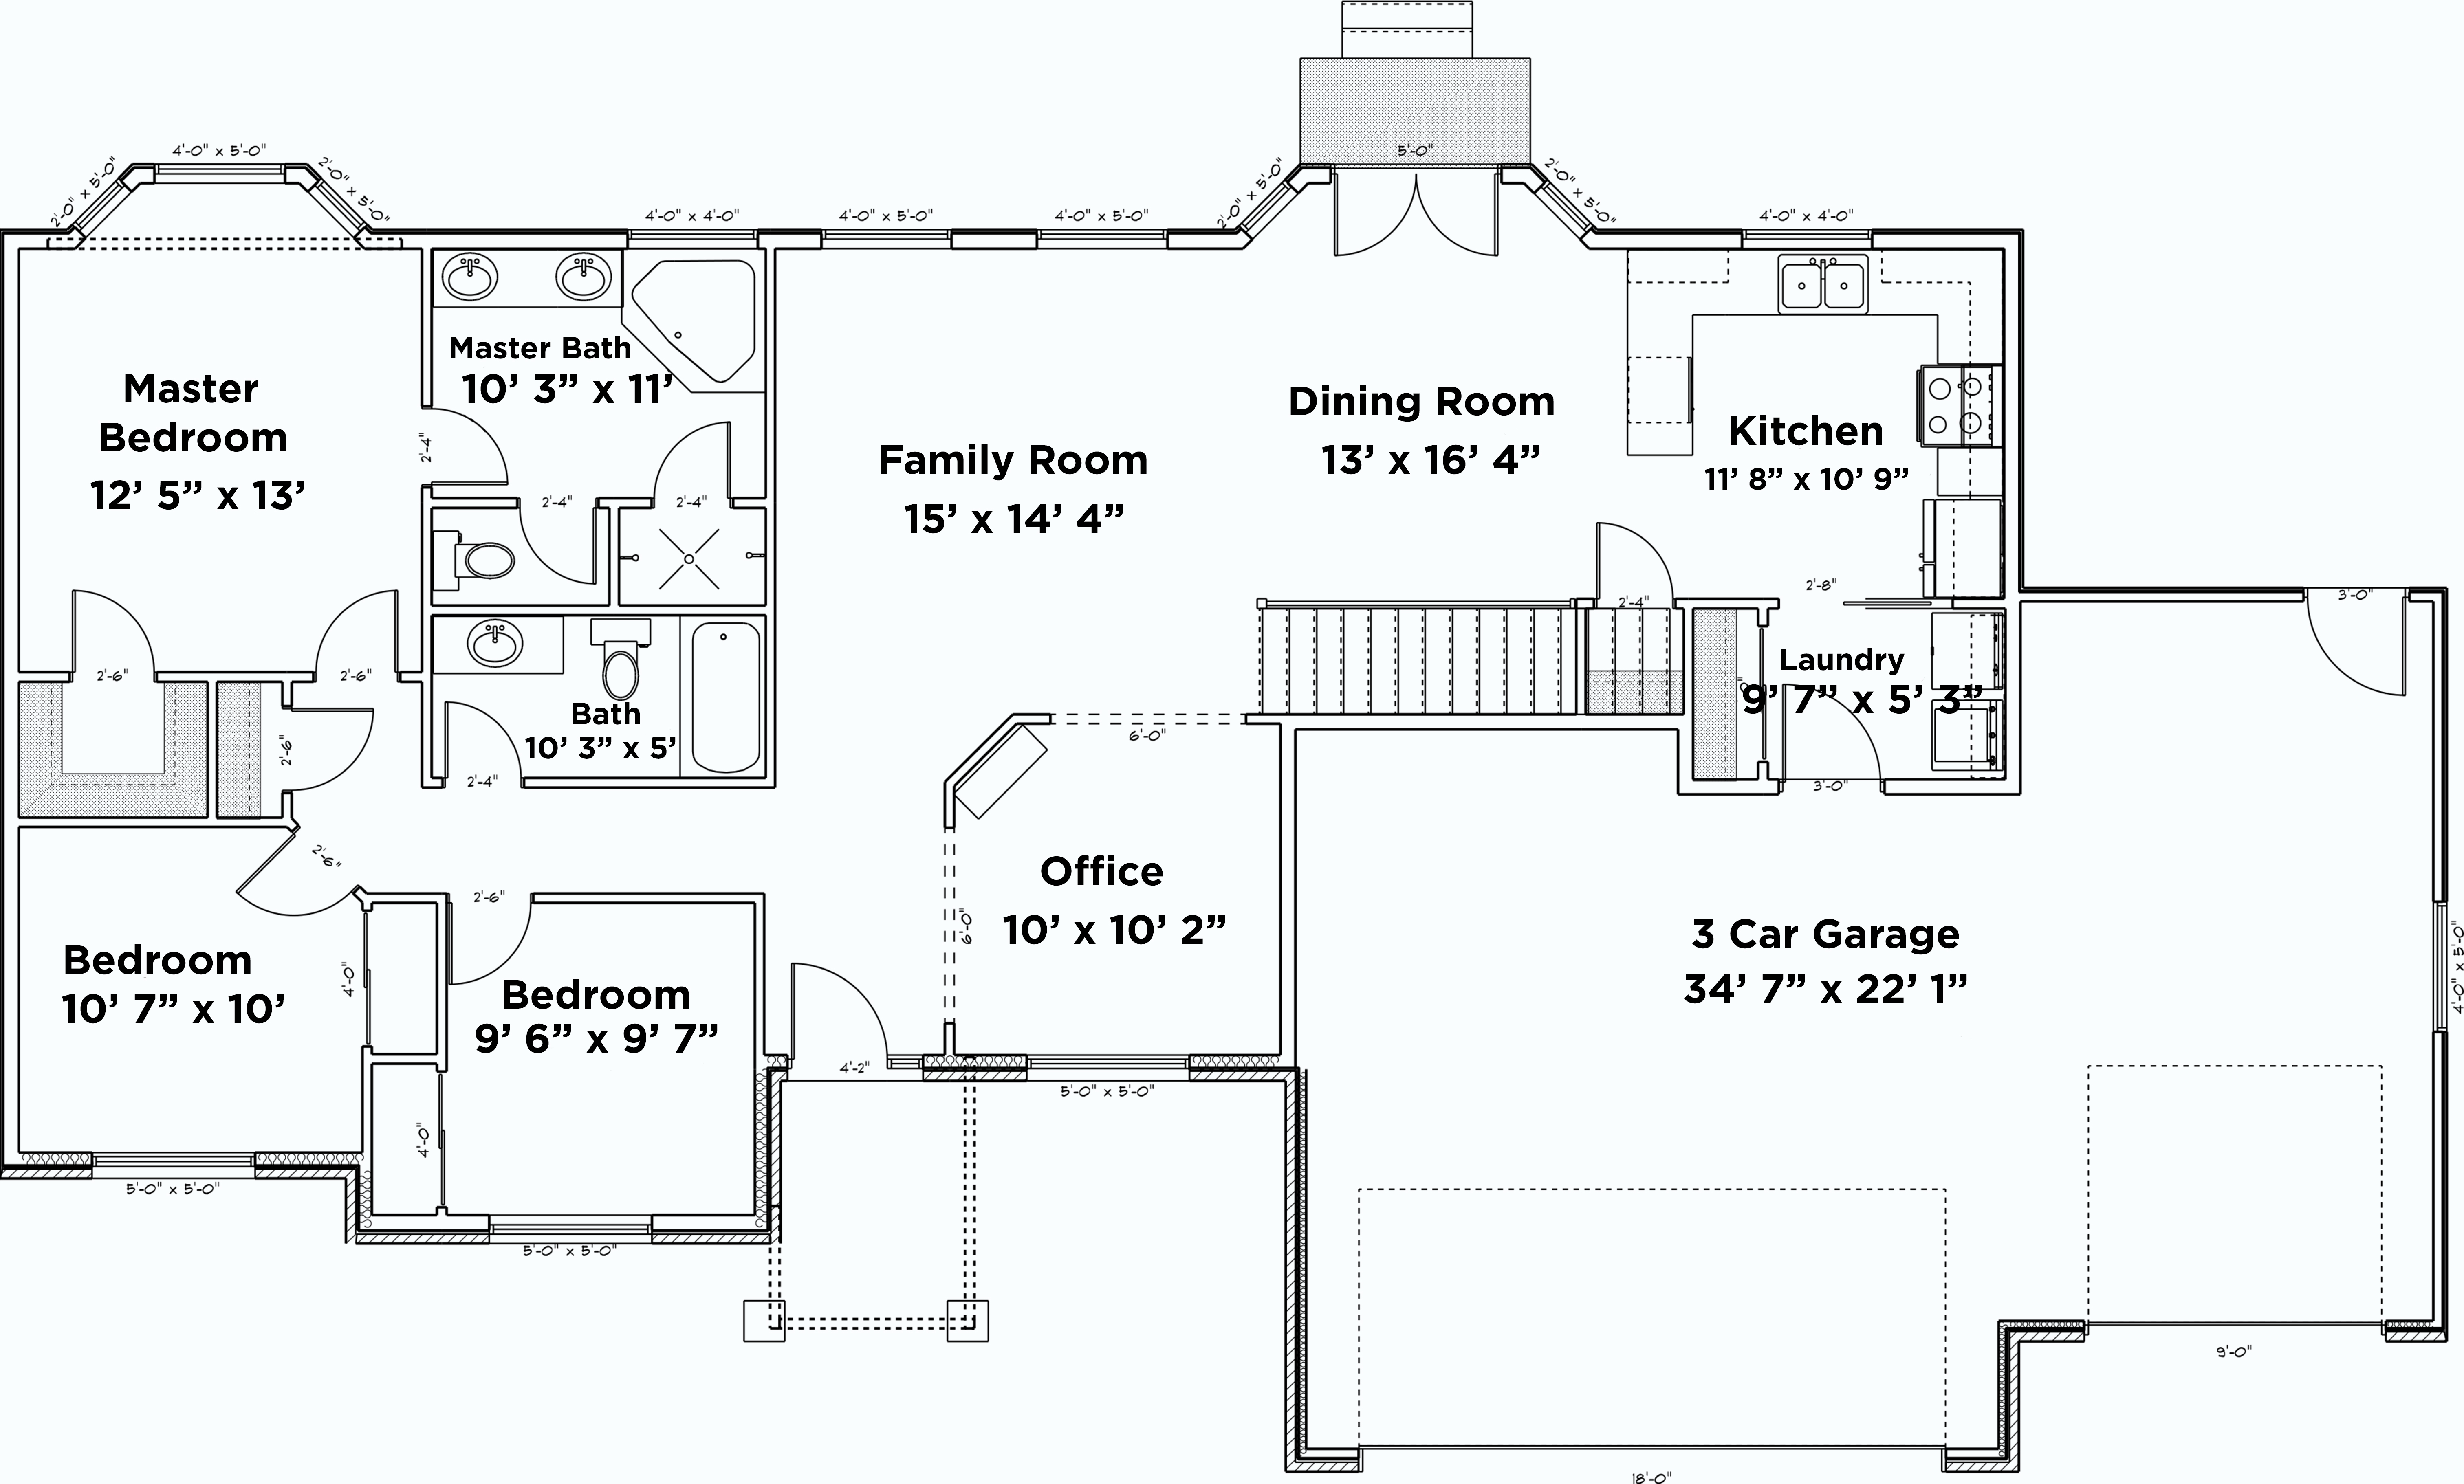 House plan 187 1048 5 bdrm 1 555 sq ft traditional home for 10 x 11 room square feet